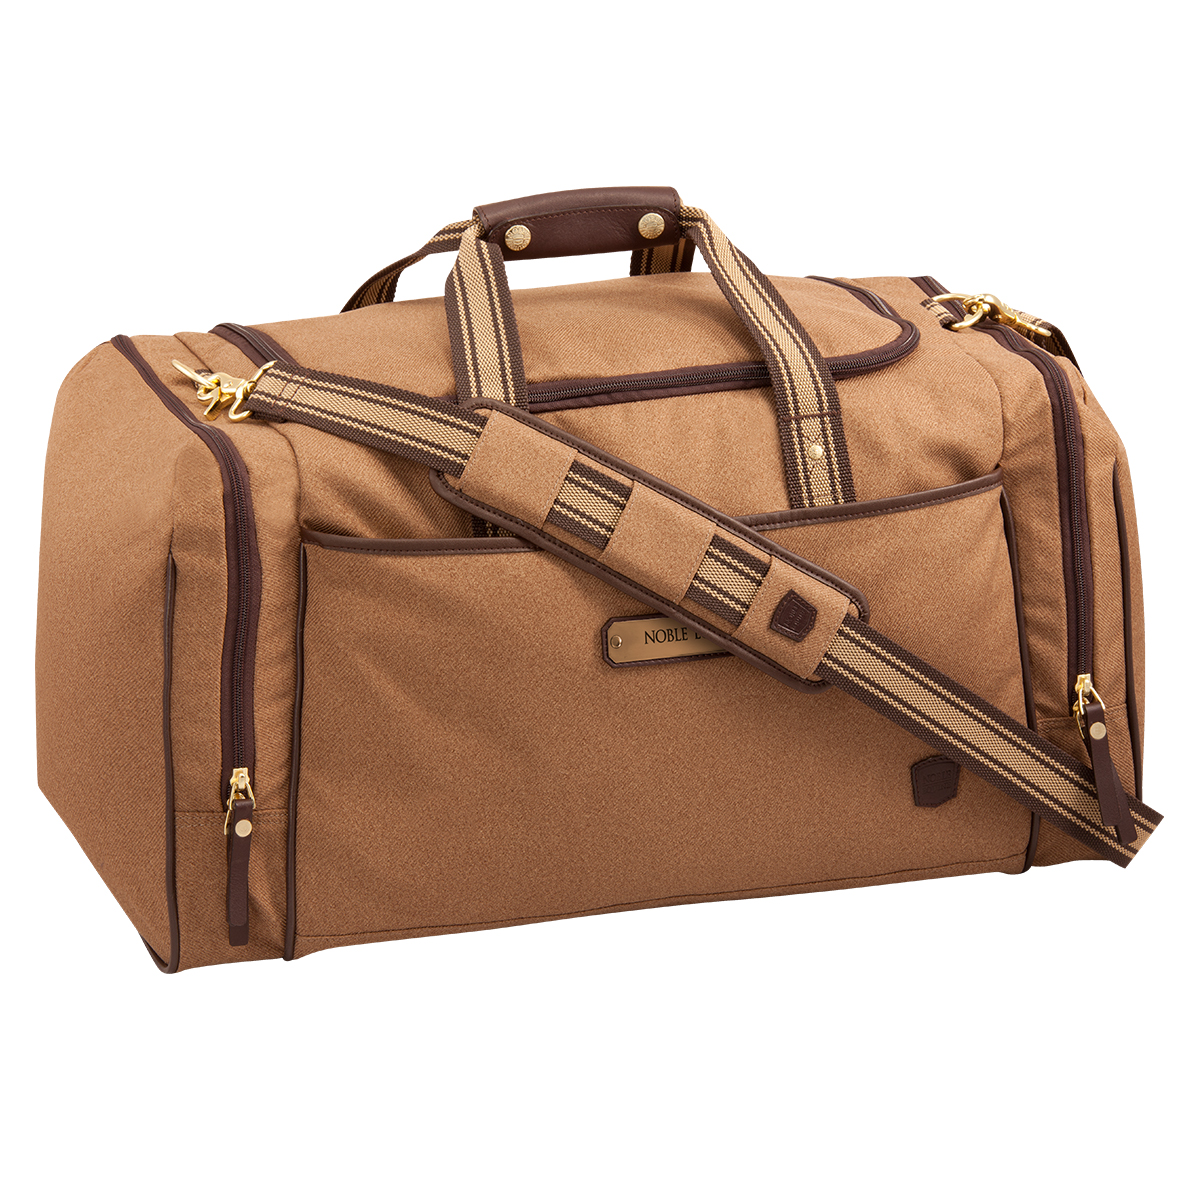 Noble Equine Signature Duffle